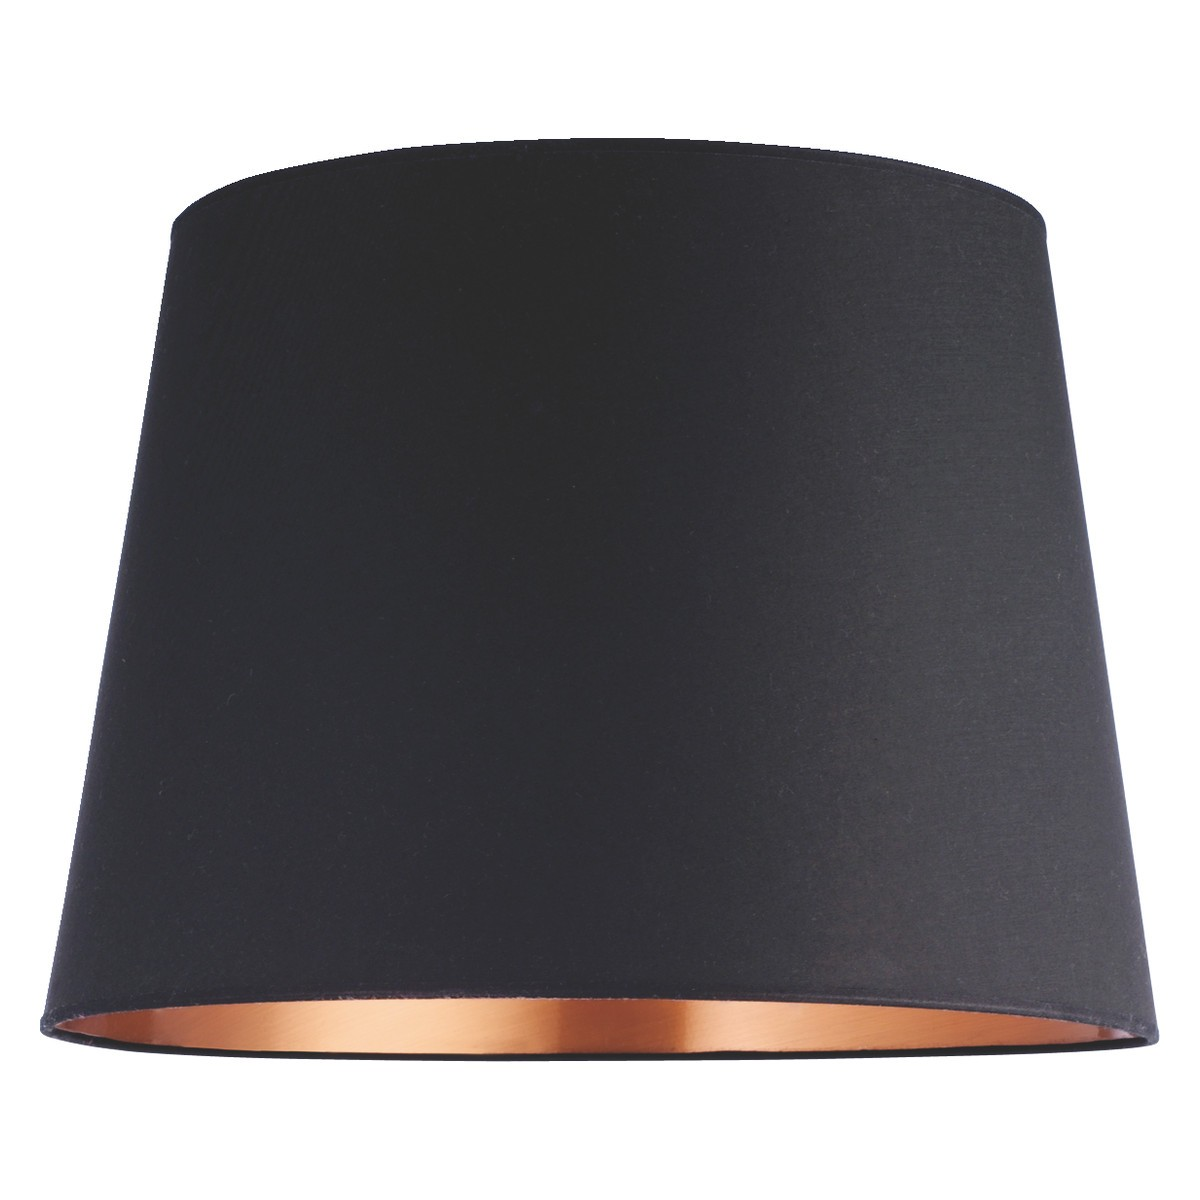 black lampshade model for floor table or pendant lamps. Black Bedroom Furniture Sets. Home Design Ideas